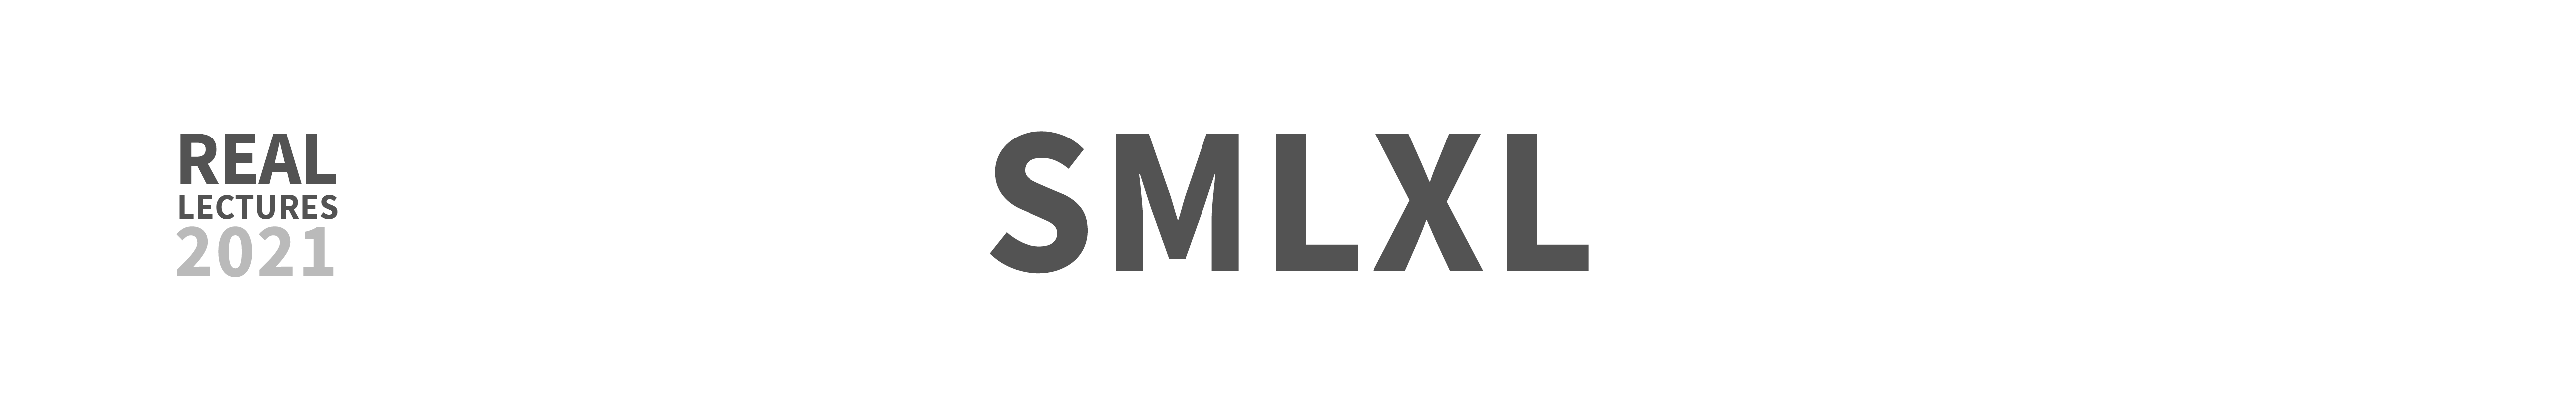 Blog Title, Real Lectures SMLXL